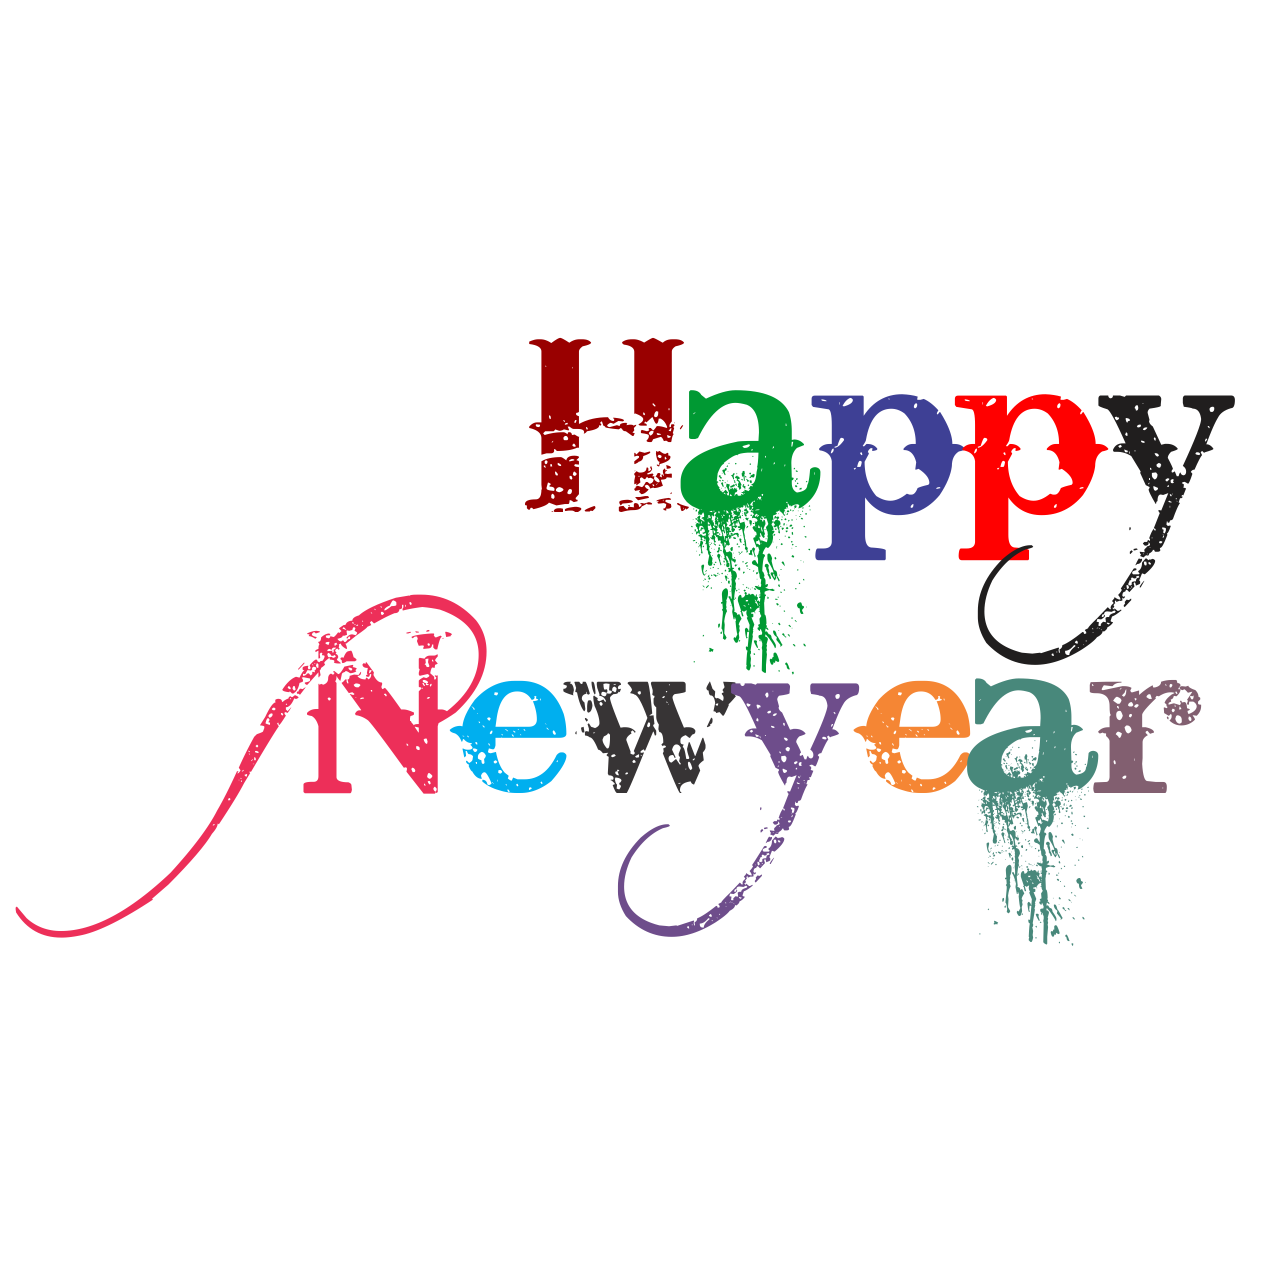 Png picsart download. Happy new year text